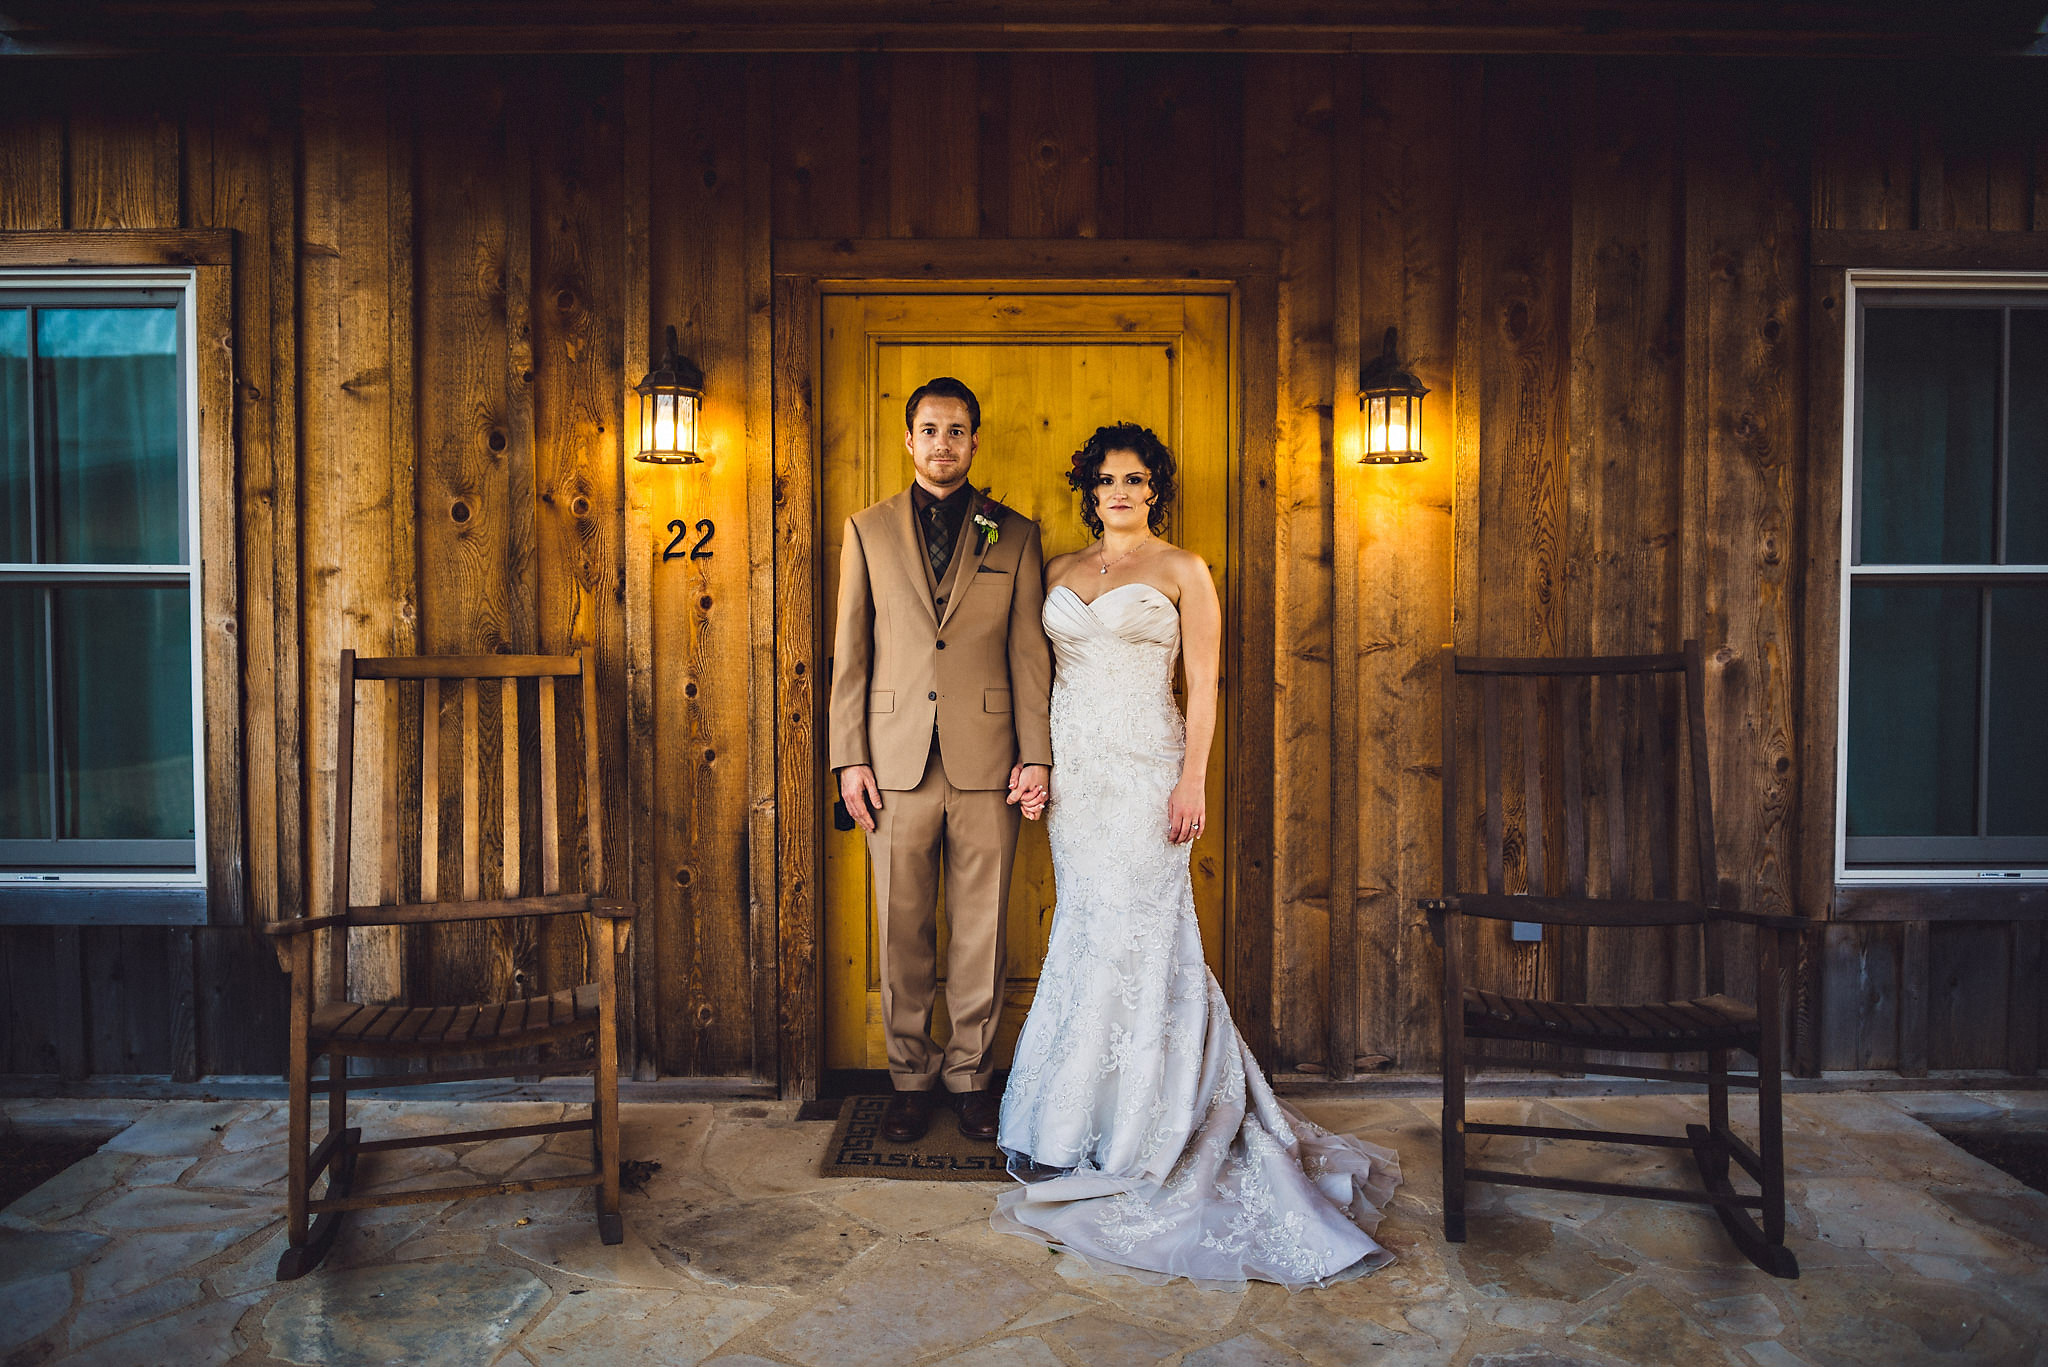 Eirik Halvorsen rustic wedding Fredericksburg Austin Texas wedding photographer-1.jpg